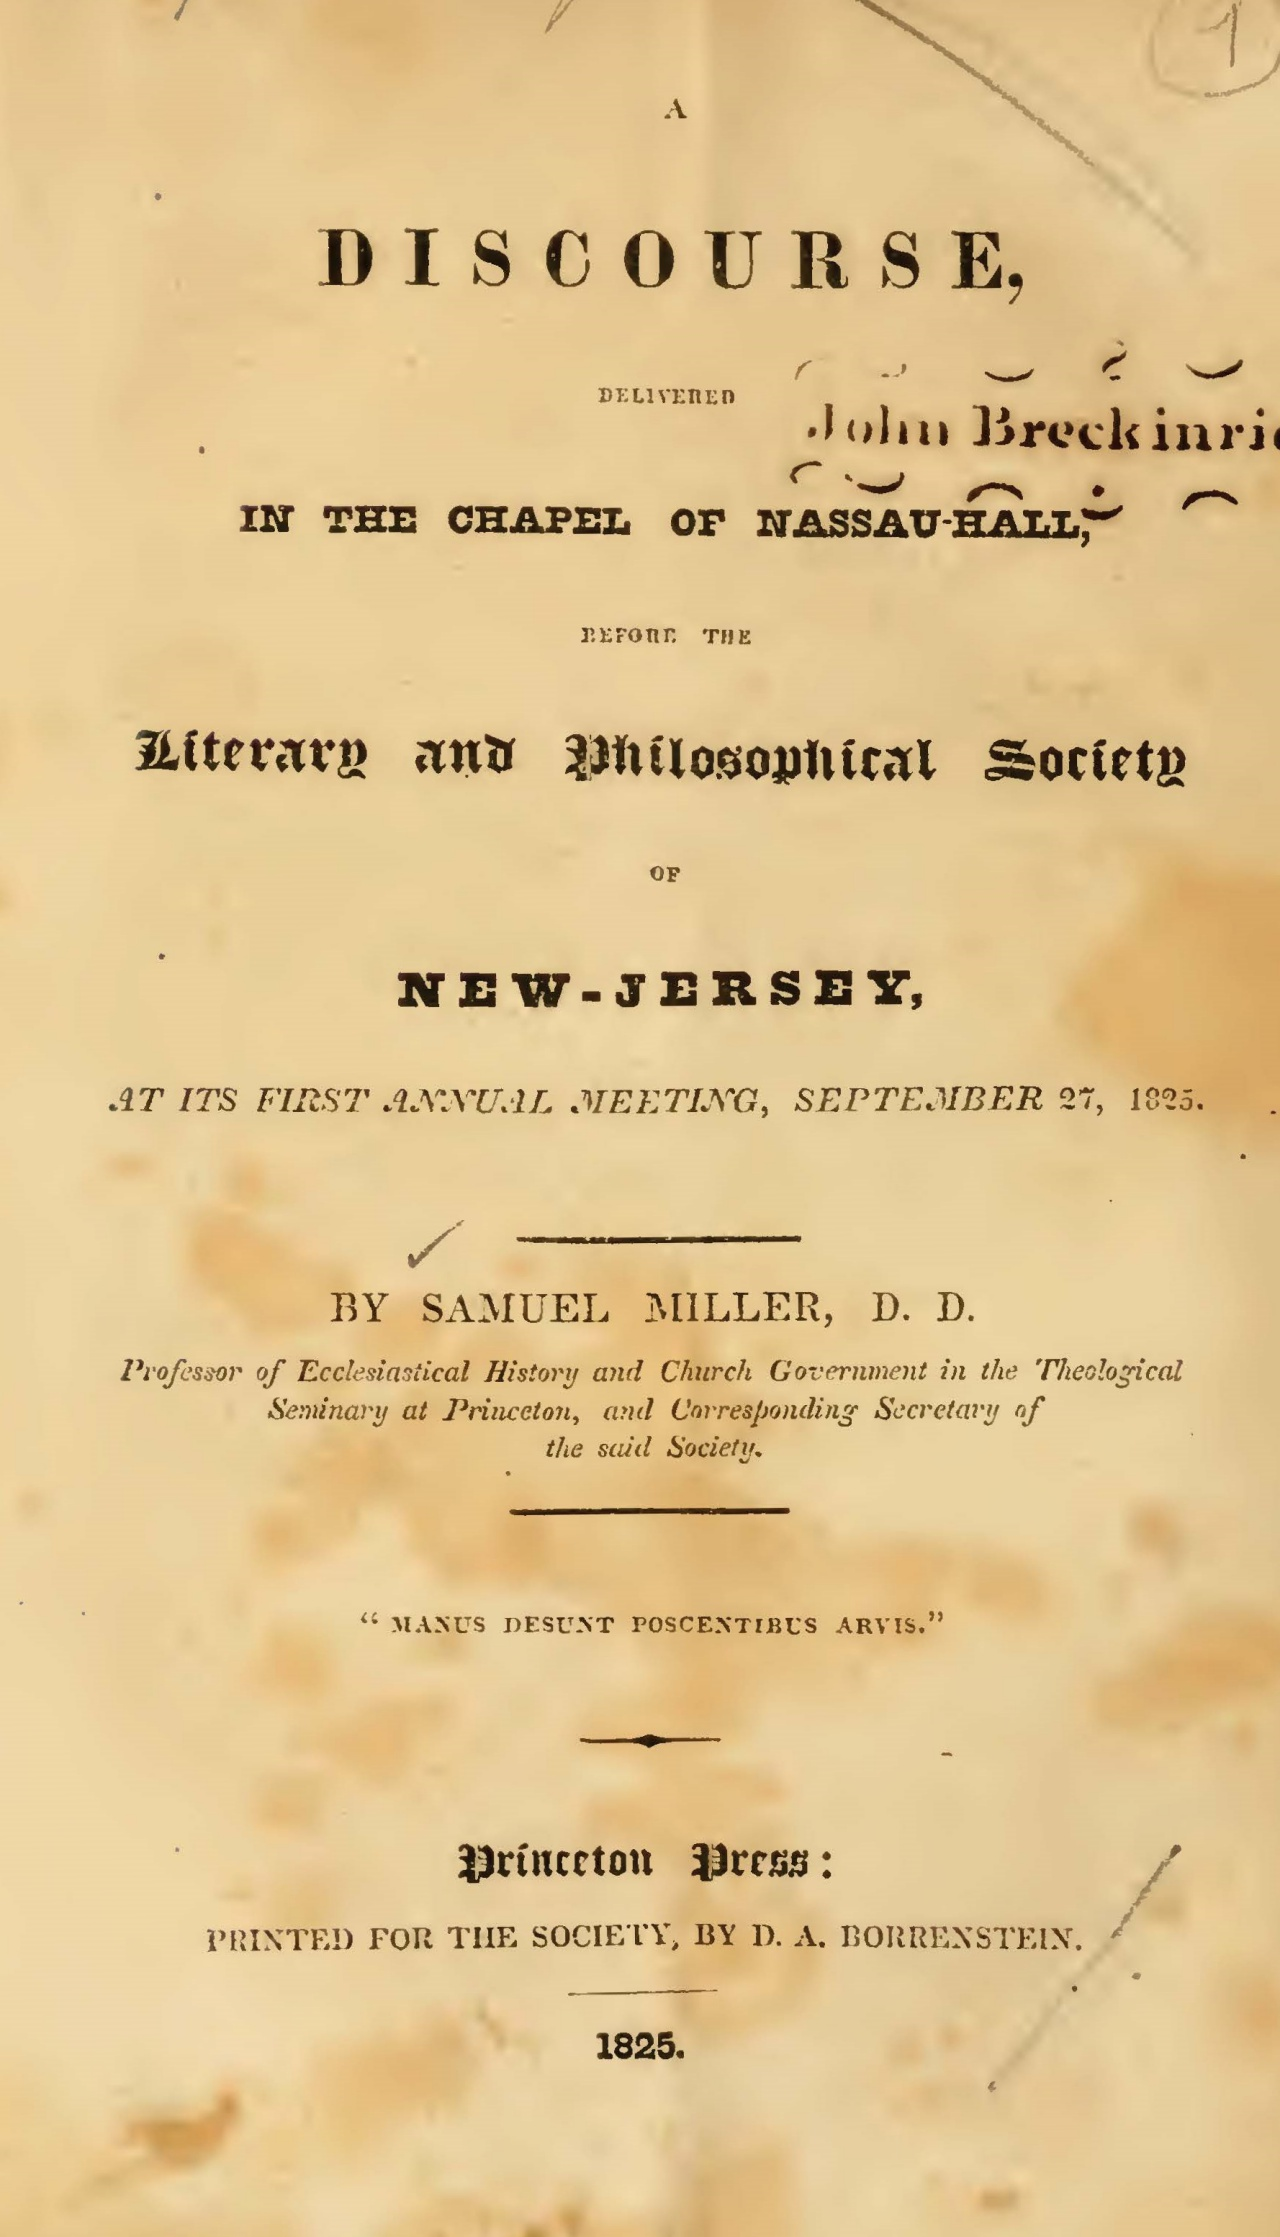 Miller, Samuel, A Discourse, Delivered in the Chapel of Nassau-Hall 1825 Title Page.jpg